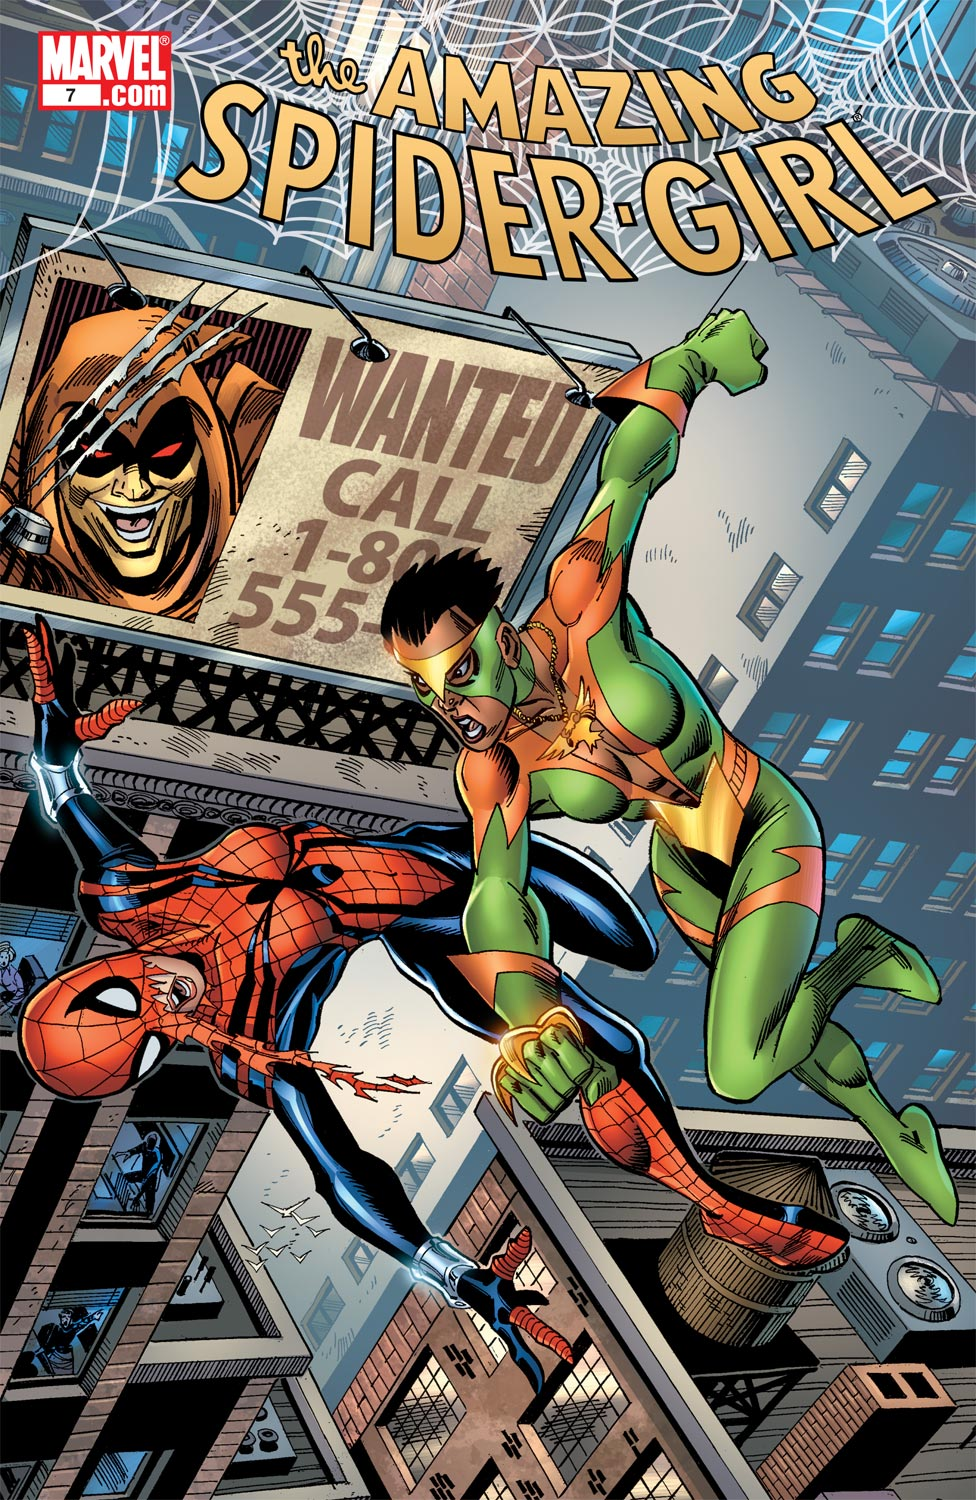 Amazing Spider-Girl (2006) #7